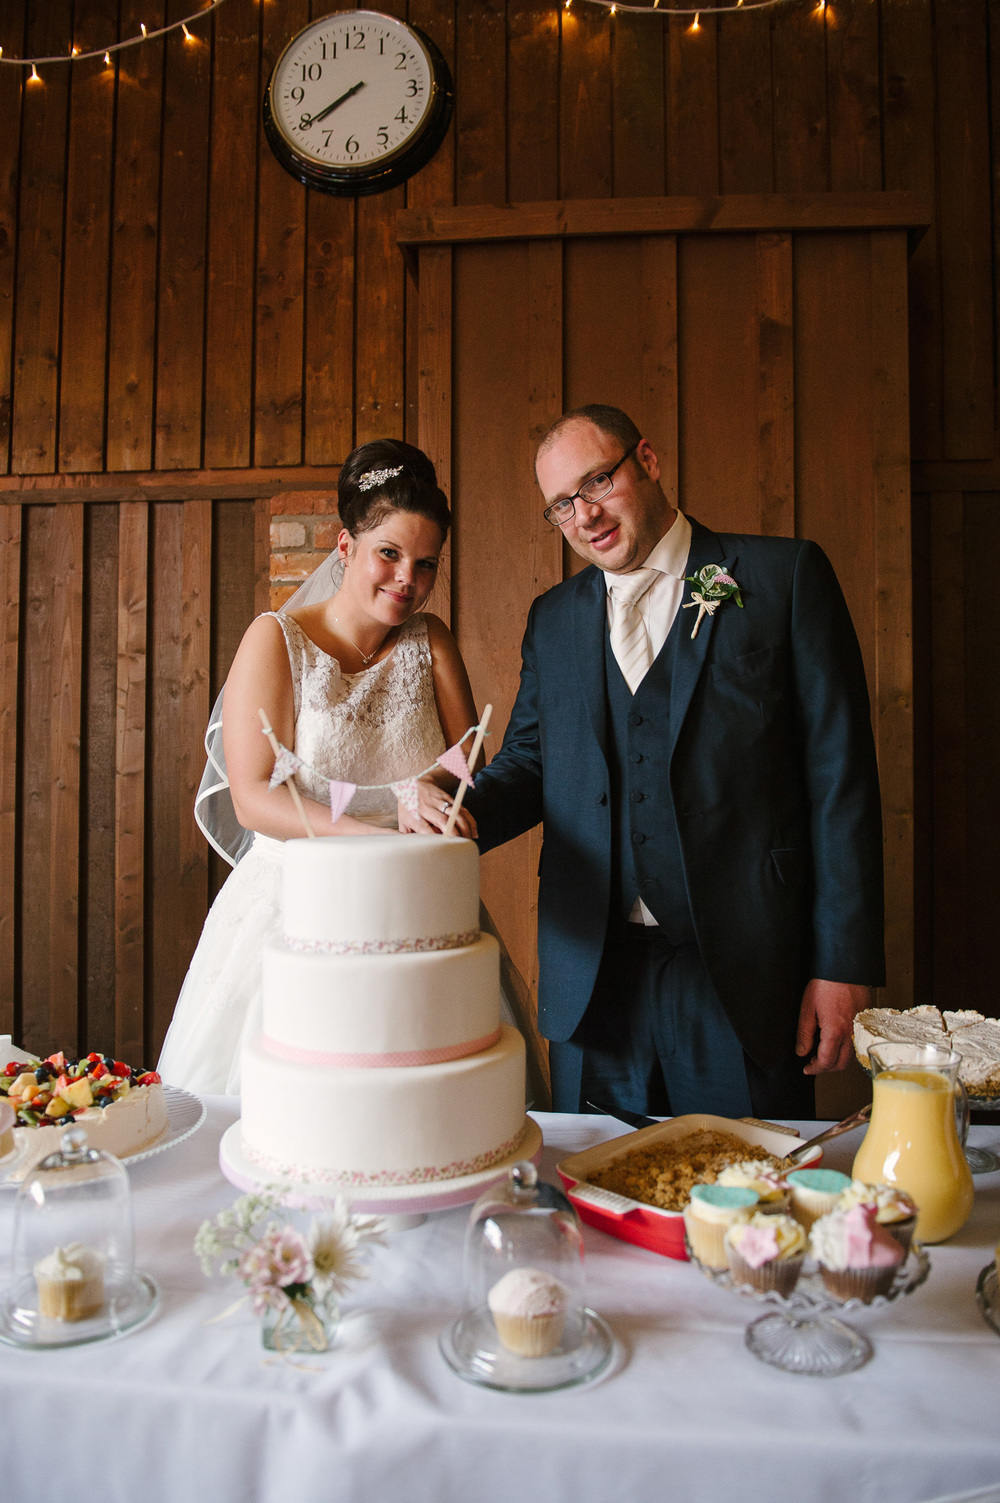 Wedding Photgraphy Northern Ireland Riverdale Barn Wedding - Lynsey and Keith 139.JPG